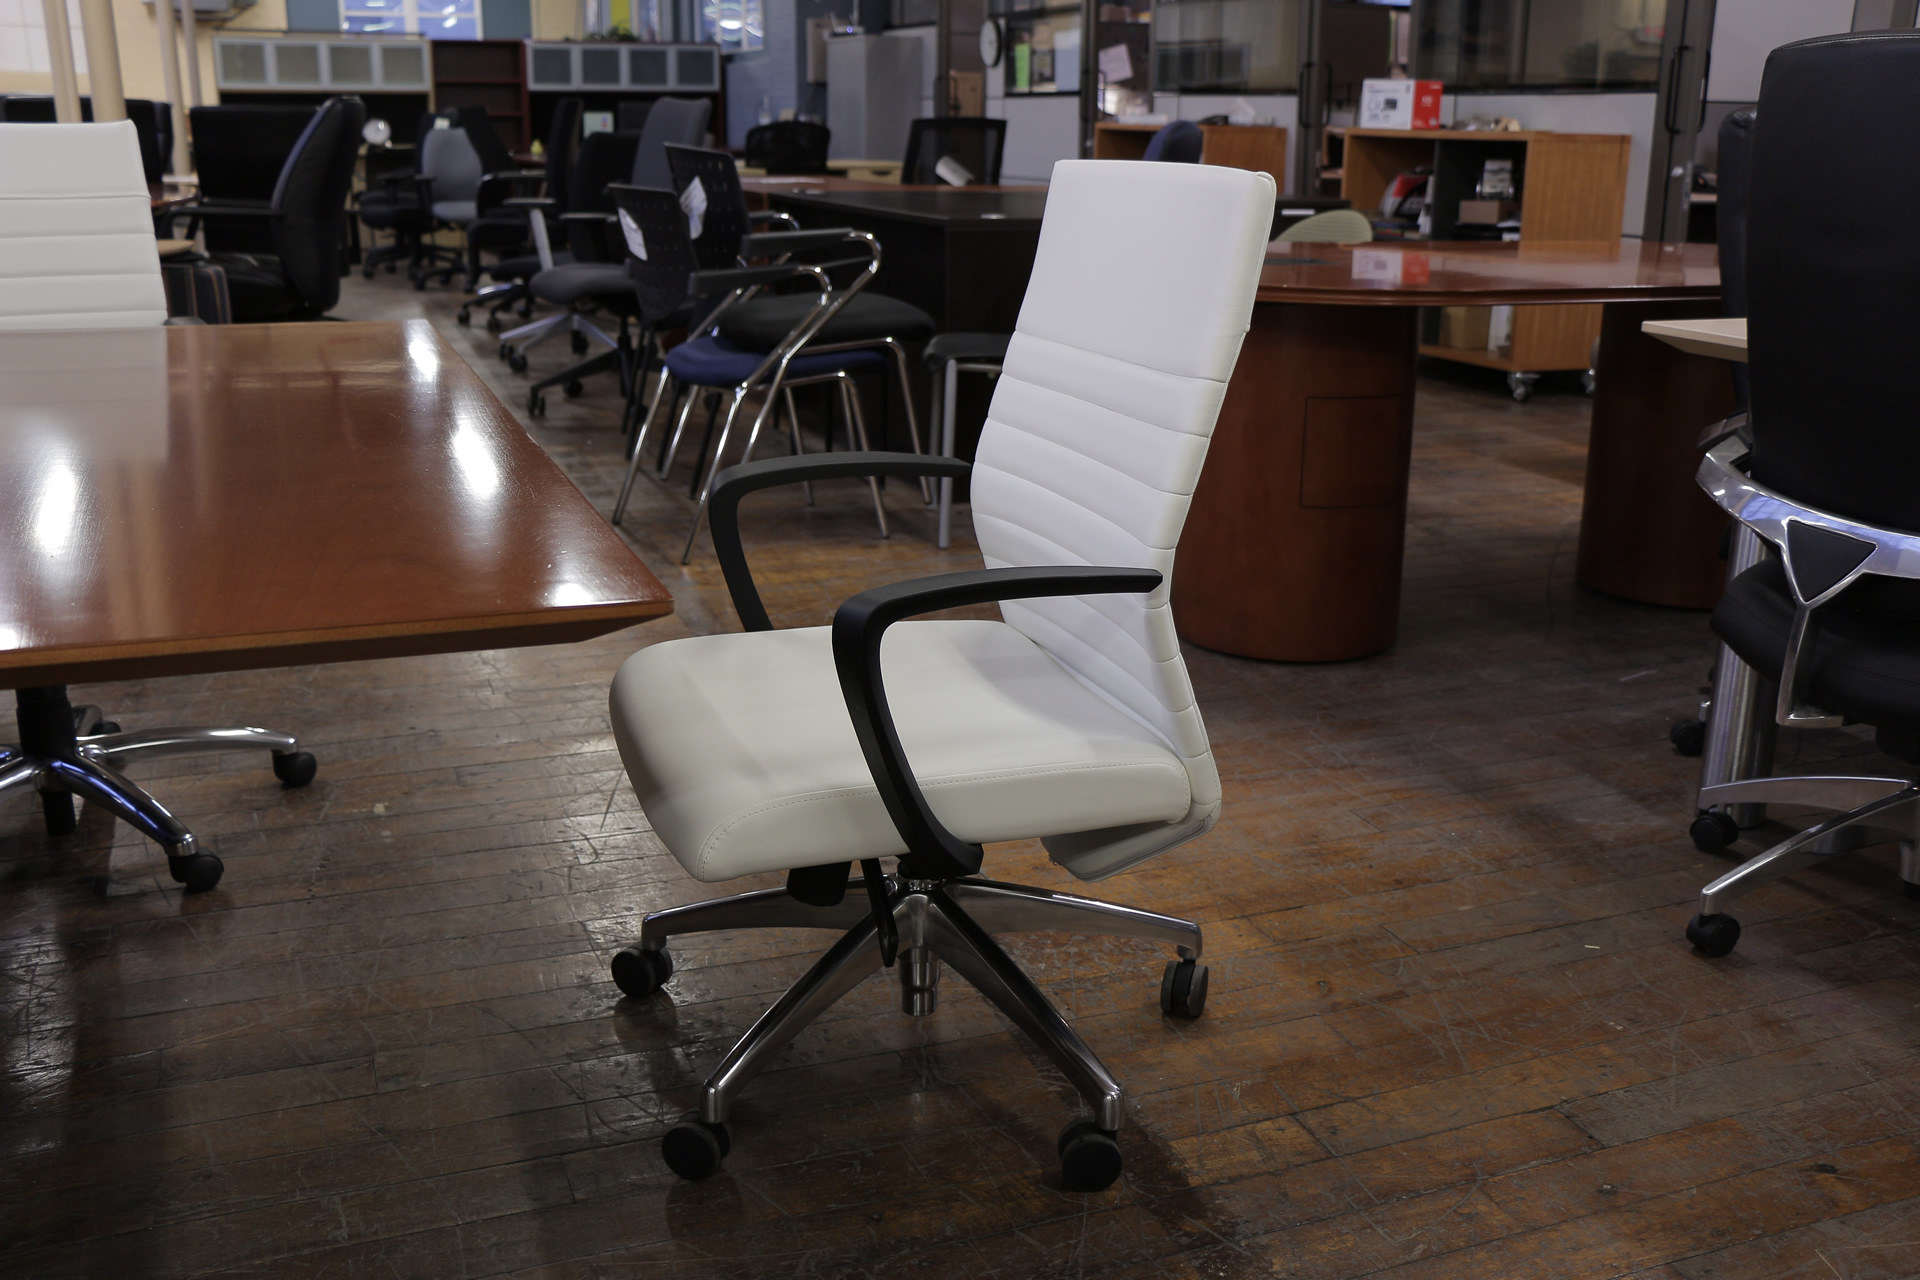 peartreeofficefurniture_peartreeofficefurniture_peartreeofficefurniture_compel-maxim-chairs-5.jpg